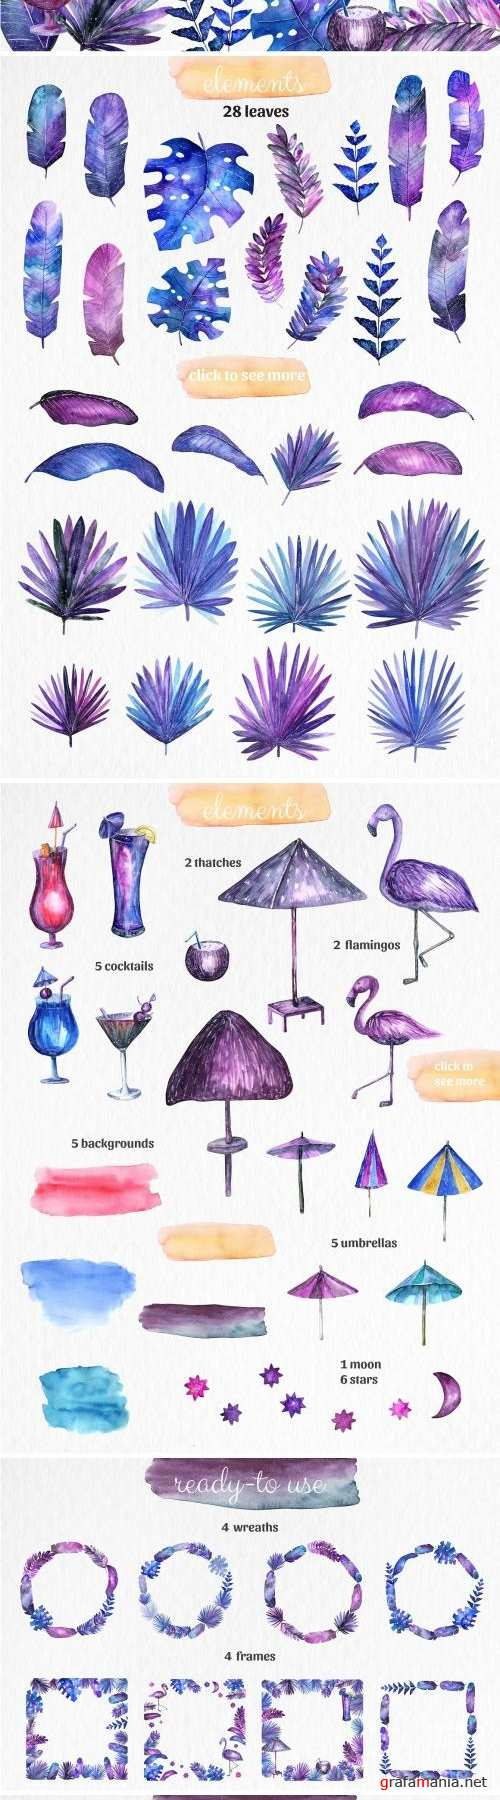 magic objects & clipart, PSD+PNG+JPG - 1570204